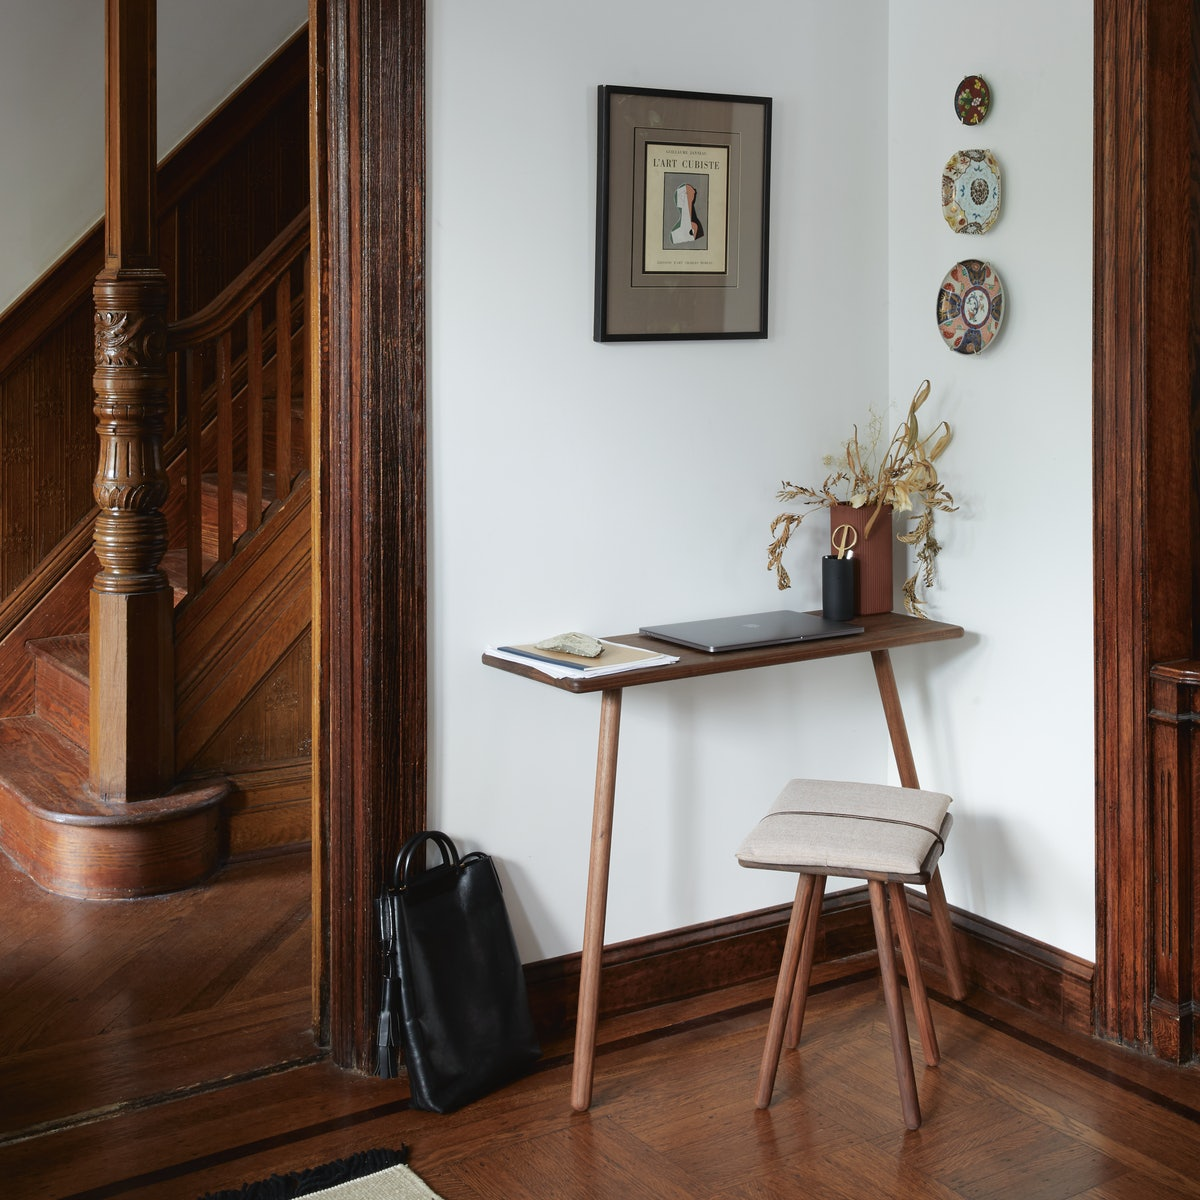 Georg Console Table with Georg Stool